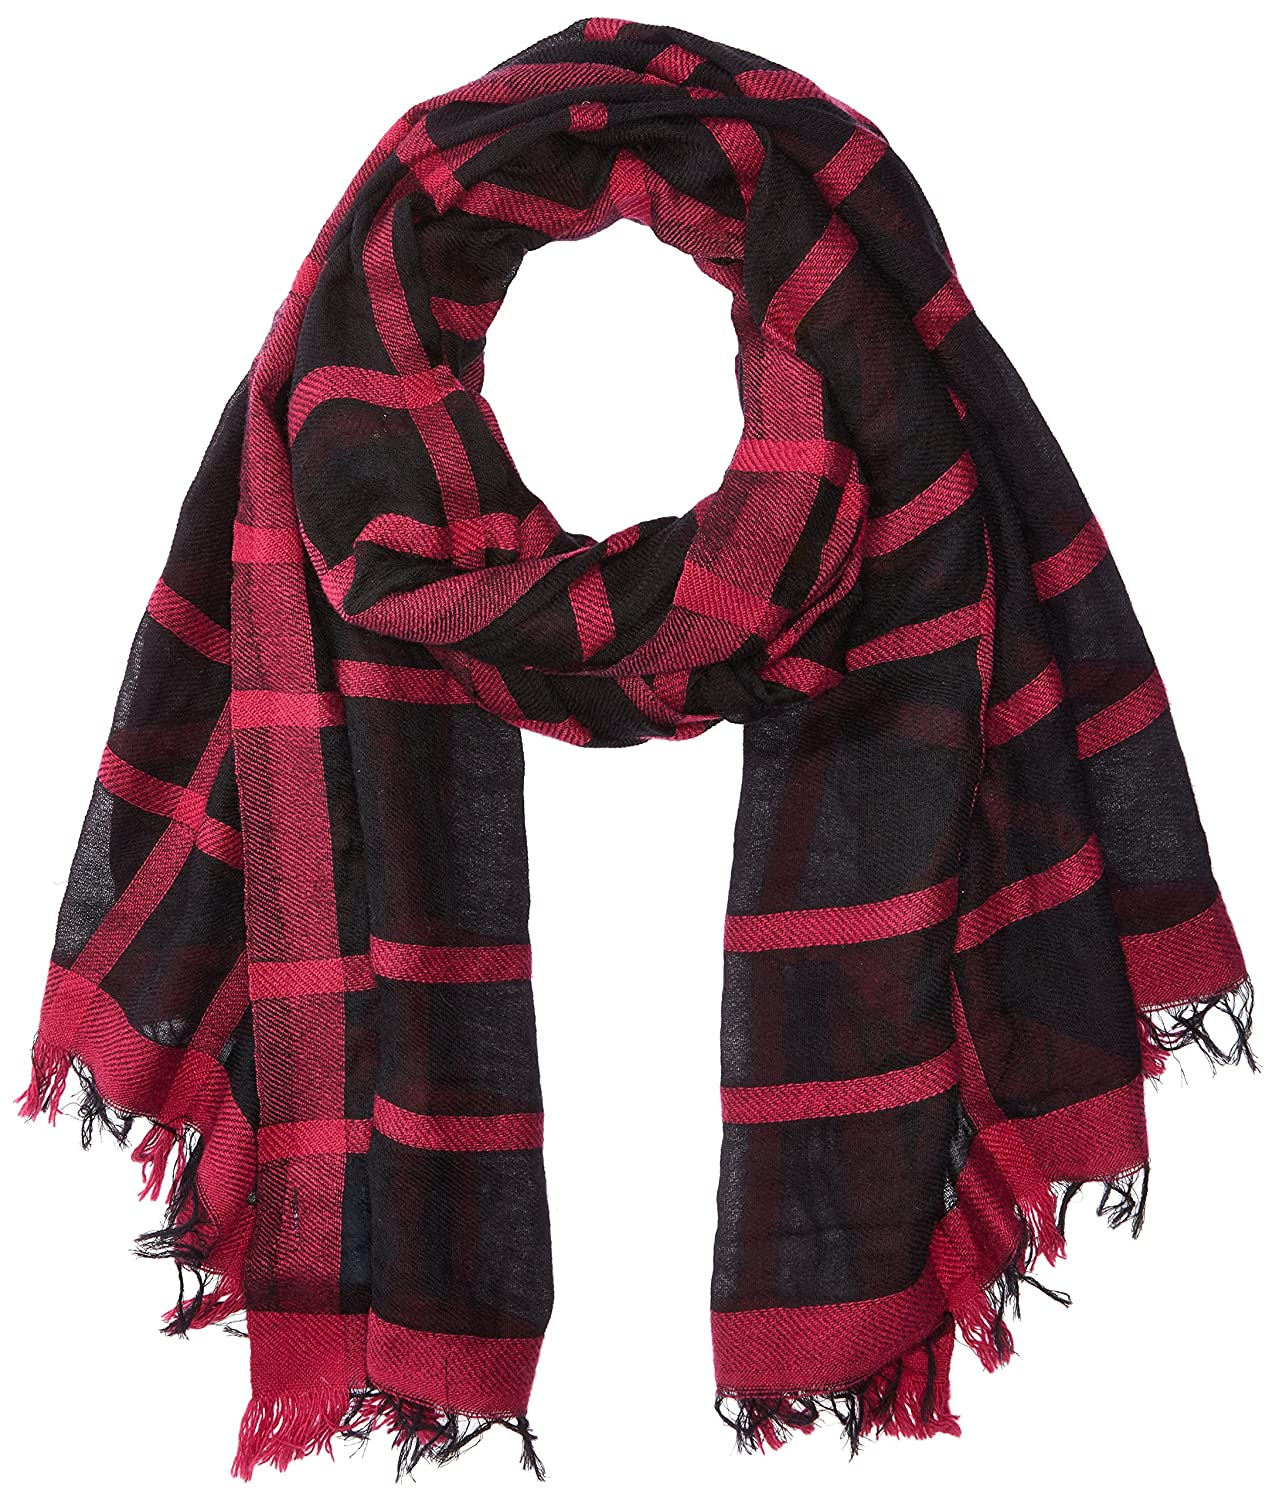 Armani Jeans Women's Plaid Woven Scarf black One Size 9241767A112